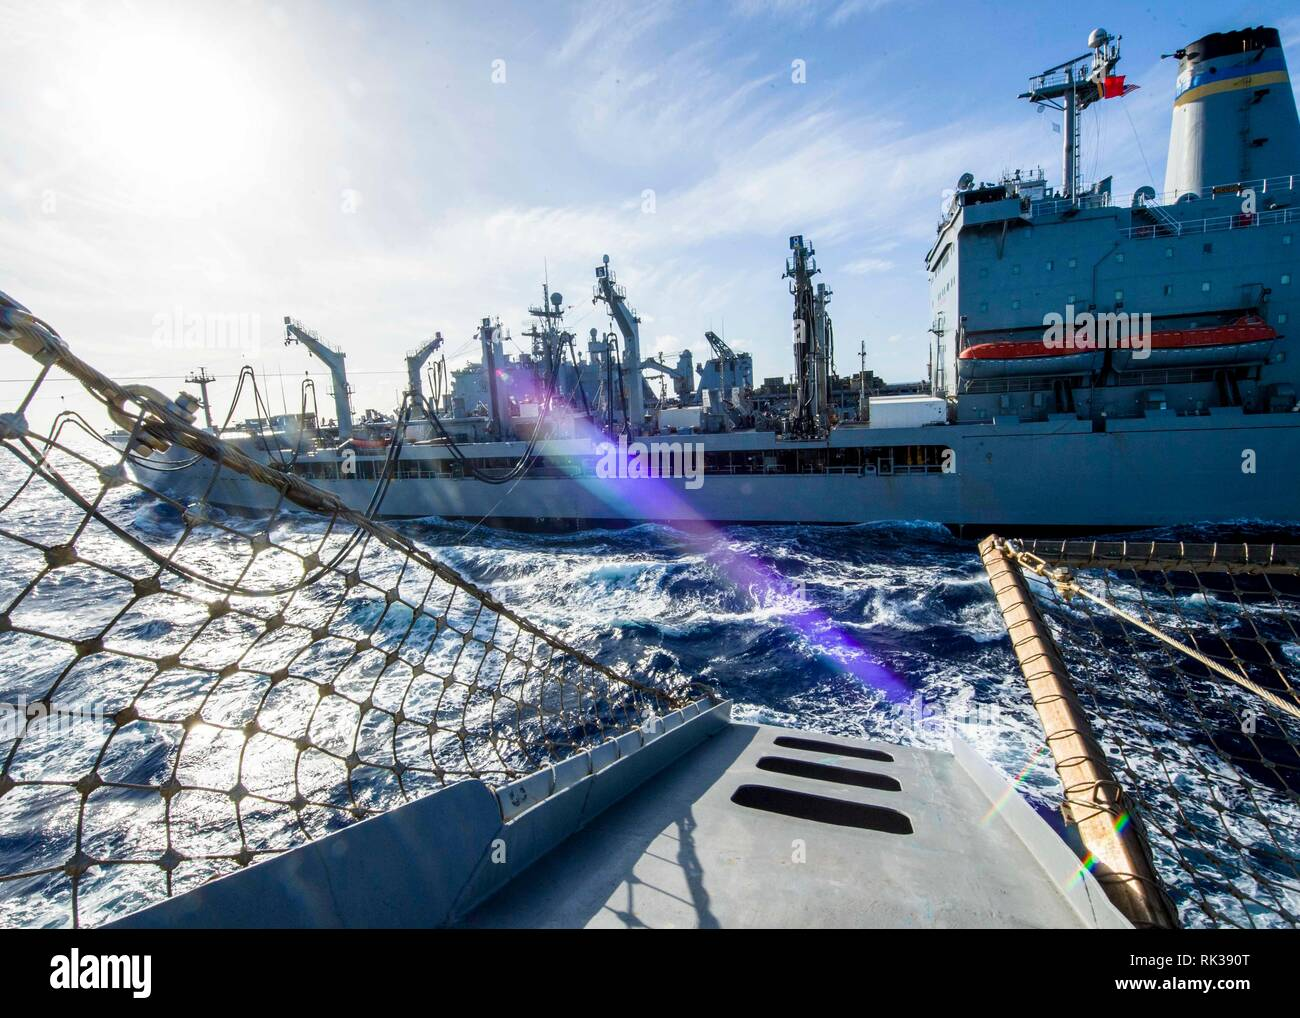 190207-N-PH222-1165 PACIFIC OCEAN (Feb. 7, 2019) The San Antonio-class amphibious transport dock ship USS Anchorage (LPD 23) participates in an underway replenishment with fleet replenishment oiler USNS Pecos (T-AO 197) while on a deployment of the Essex Amphibious Ready Group (ARG) and 13th Marine Expeditionary Unit (MEU). The Essex ARG/13th MEU is a capable and lethal Navy-Marine Corps team deployed to the 7th fleet area of operations to support regional stability, reassure partners and allies and maintain a presence postured to respond to any crisis ranging from humanitarian assistance to c - Stock Image